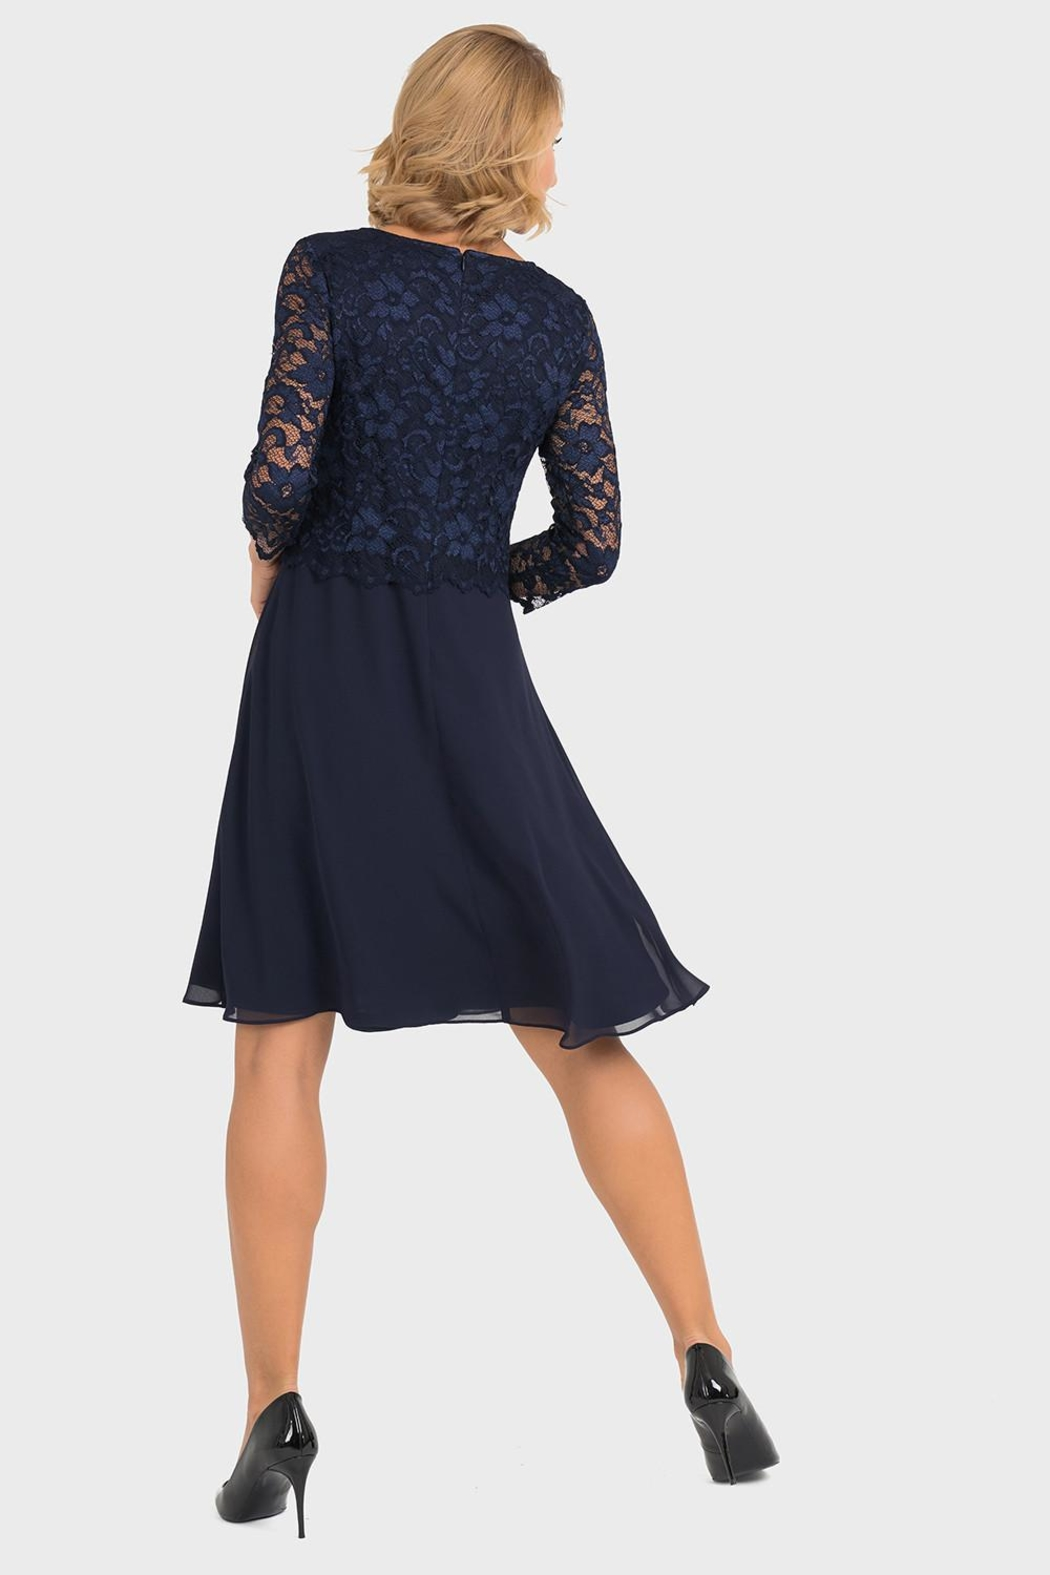 Joseph Ribkoff Marie Lace-Top Dress - Side Cropped Image